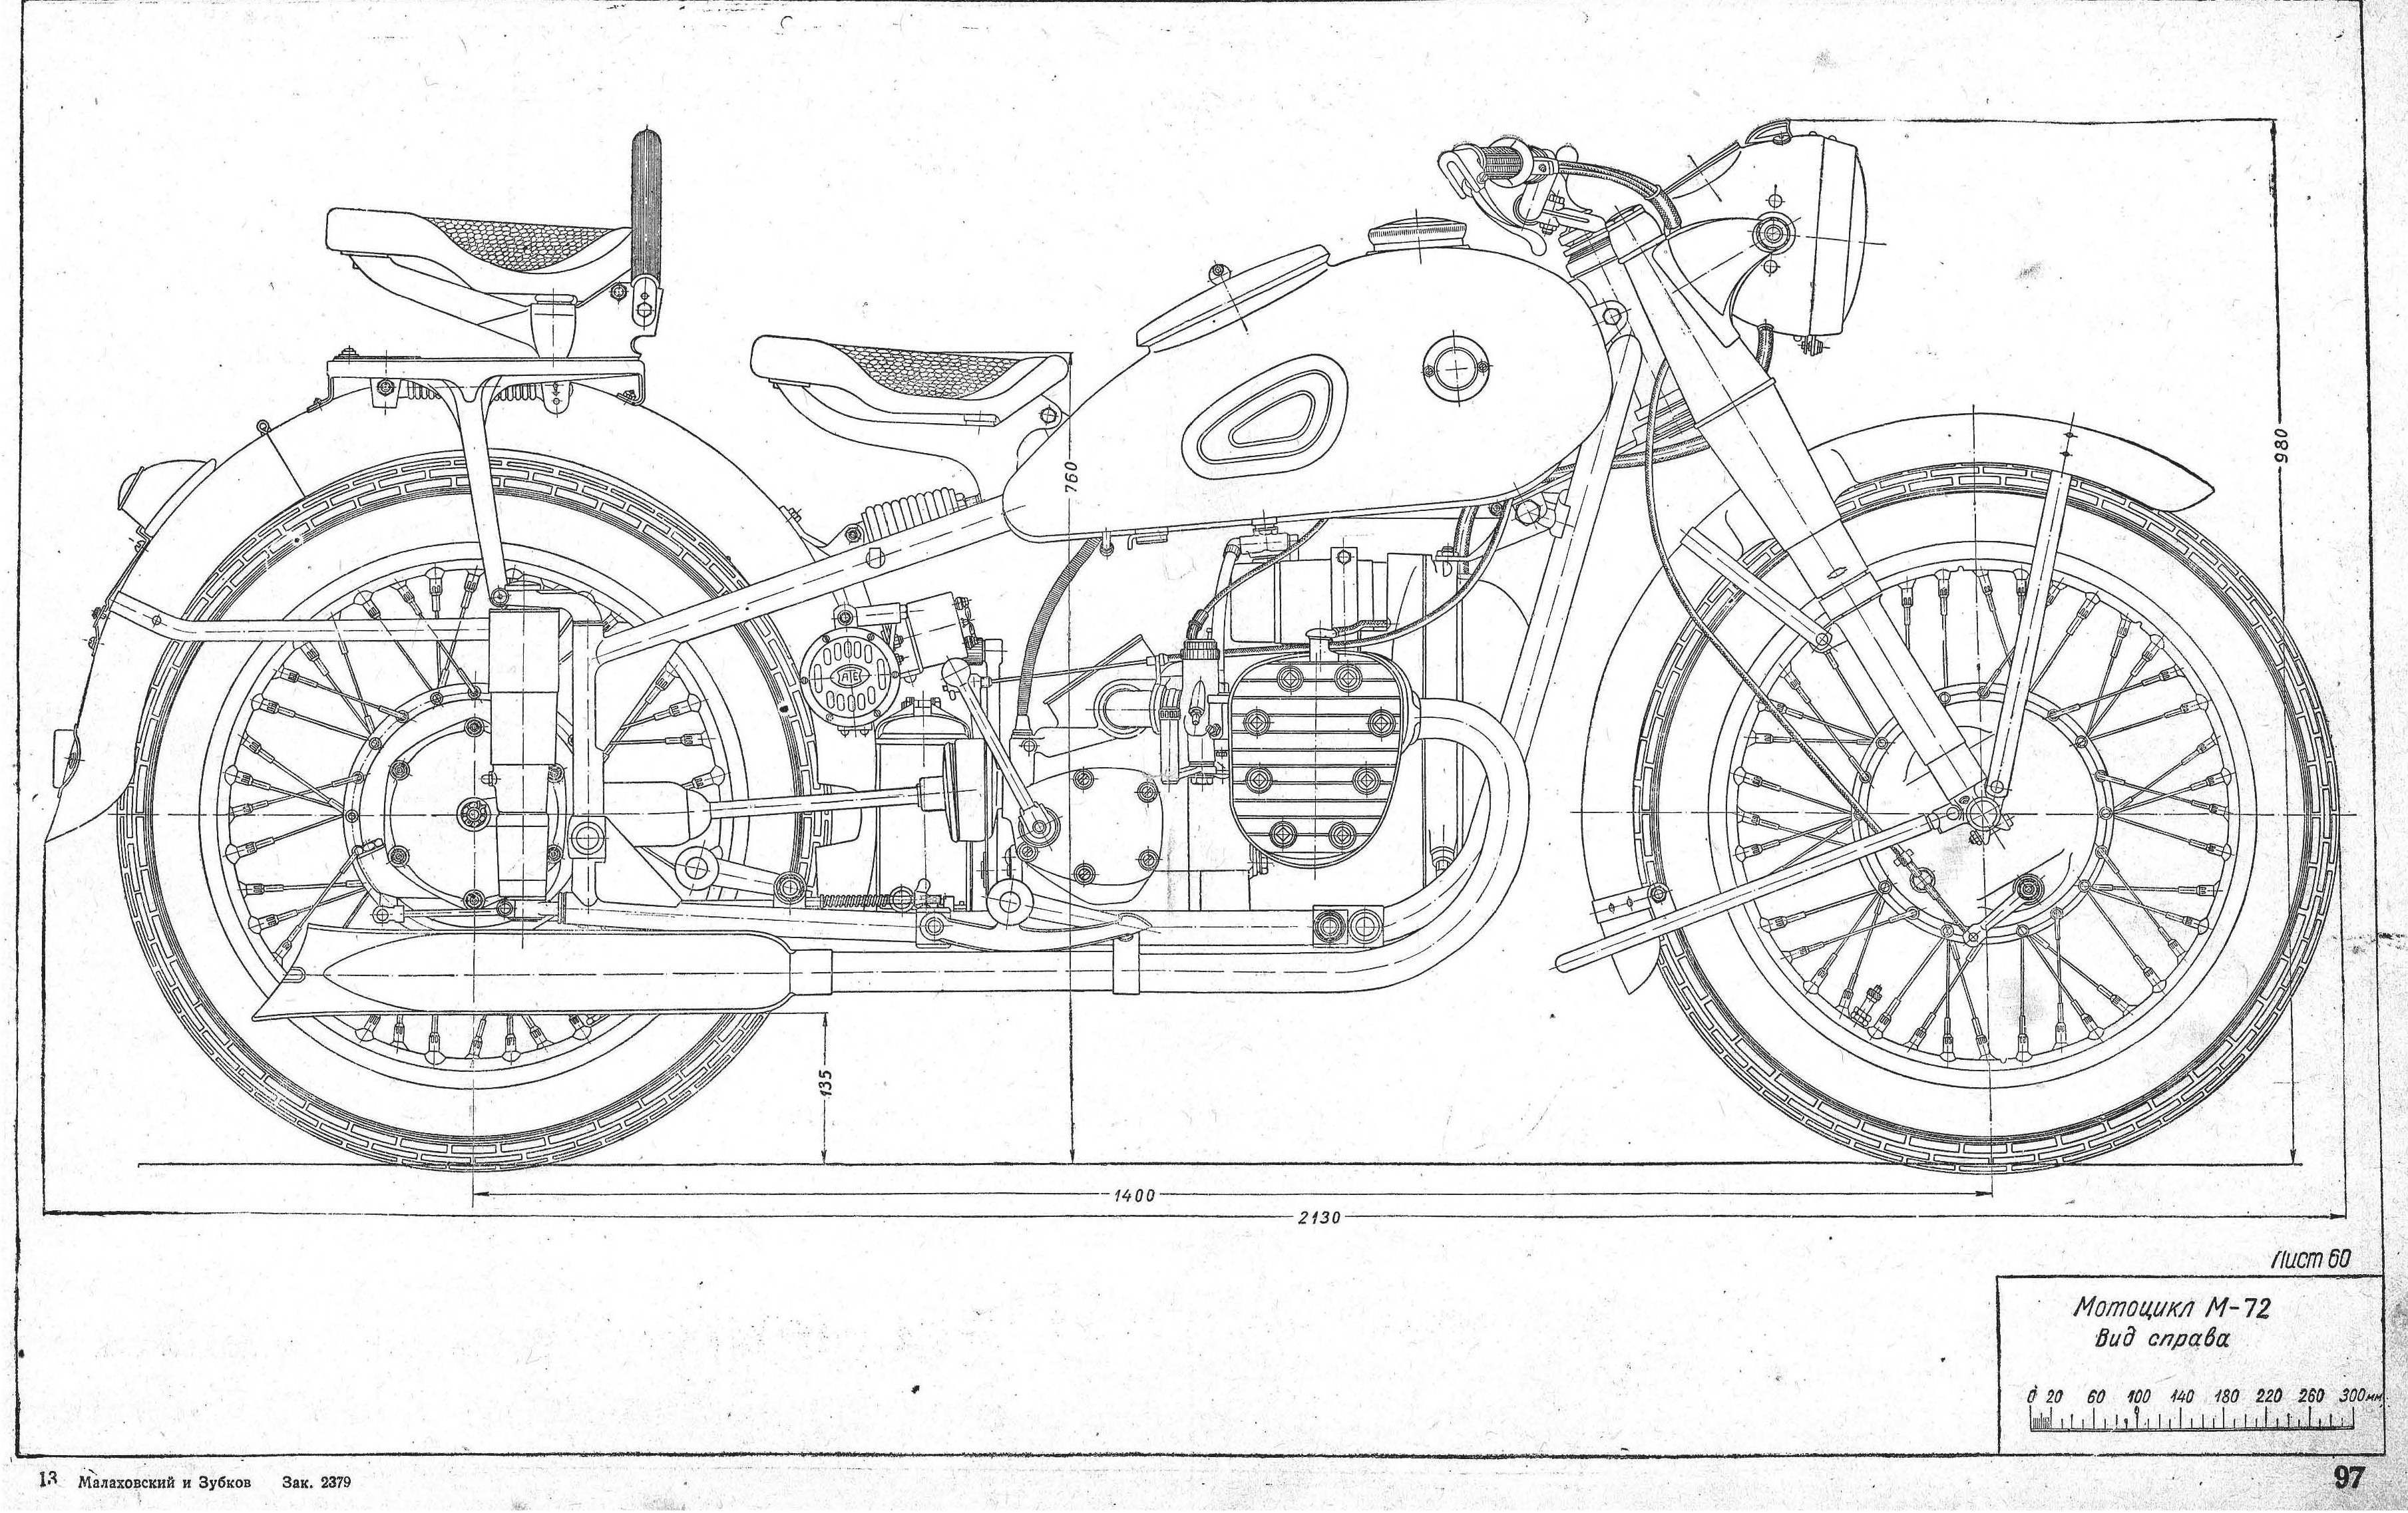 Motorcycles M 72